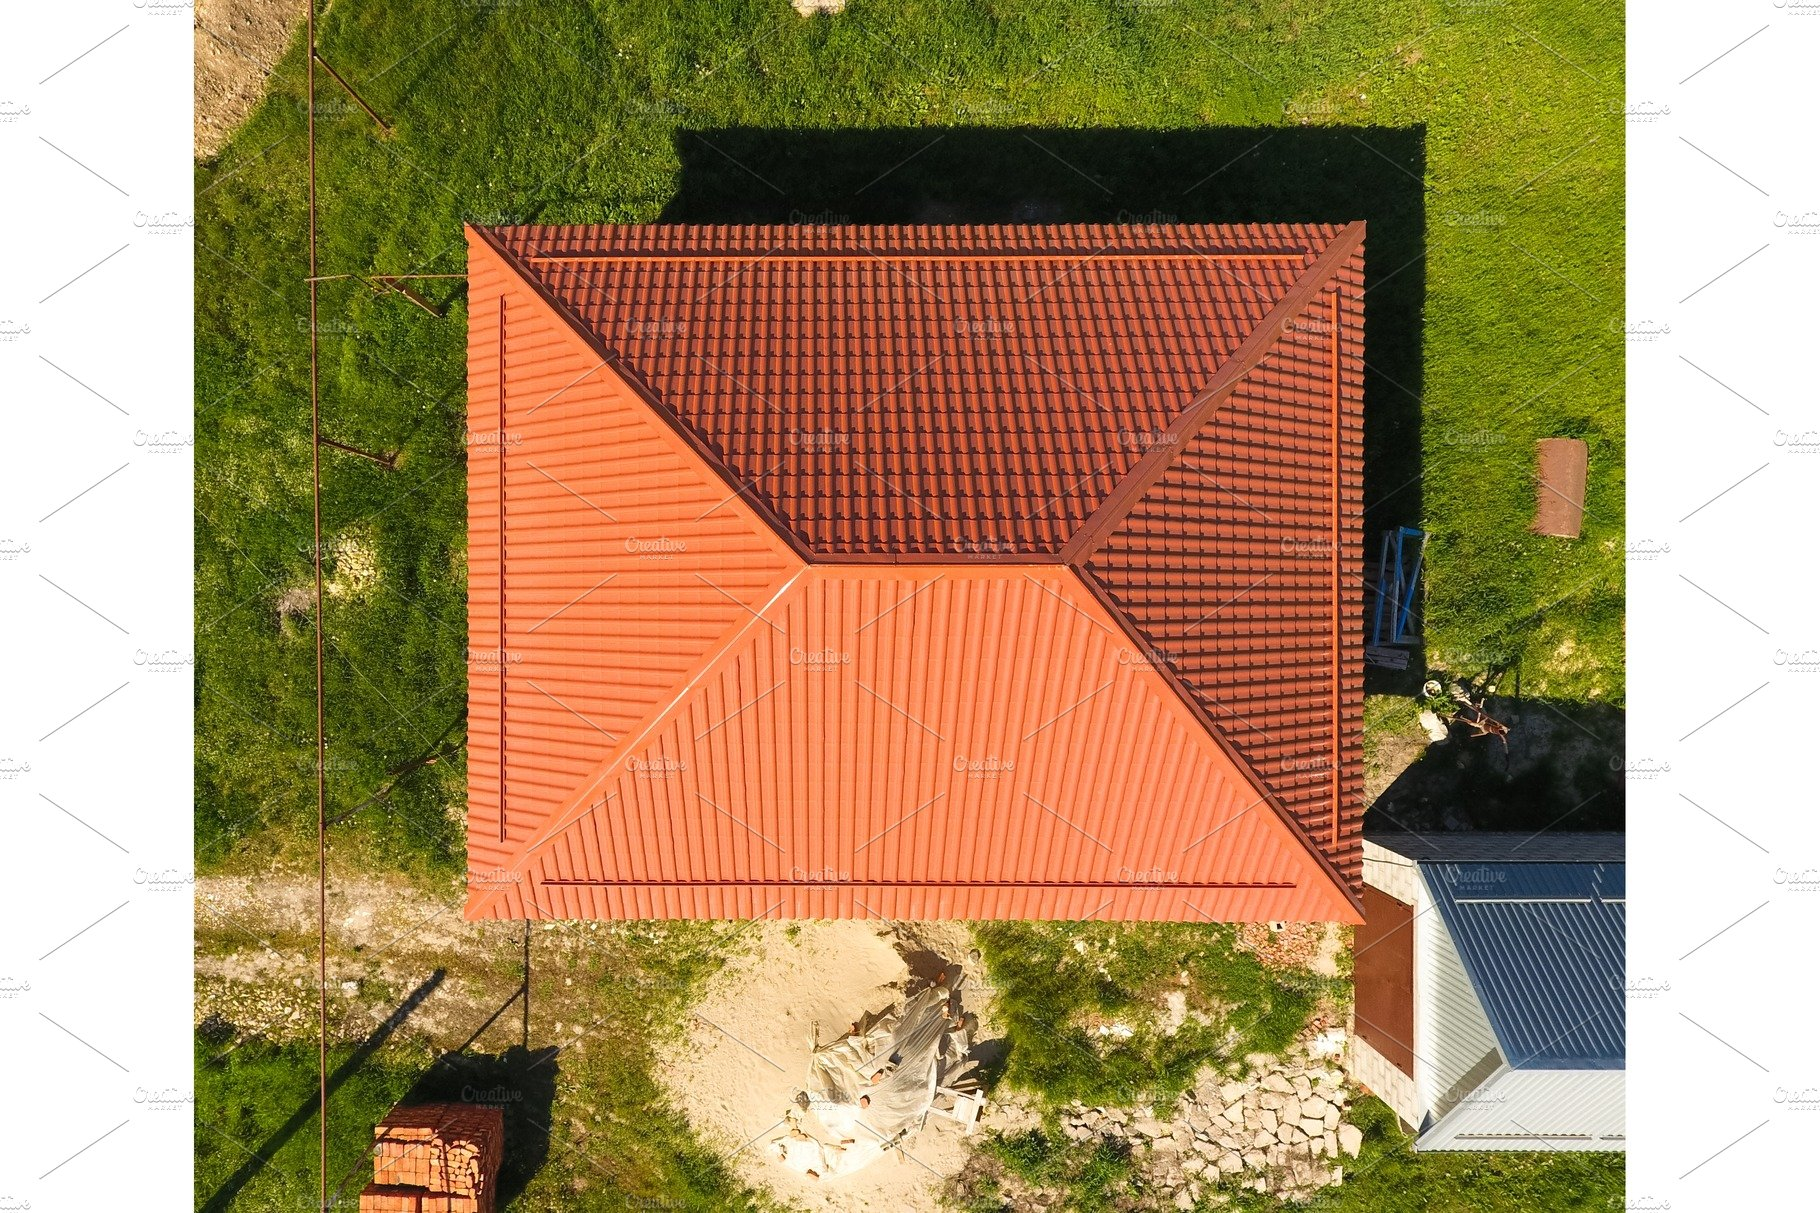 House With An Orange Roof Made Of Metal Top View Metallic Profile Painted Corrugated On The Roof High Quality Architecture Stock Photos Creative Market